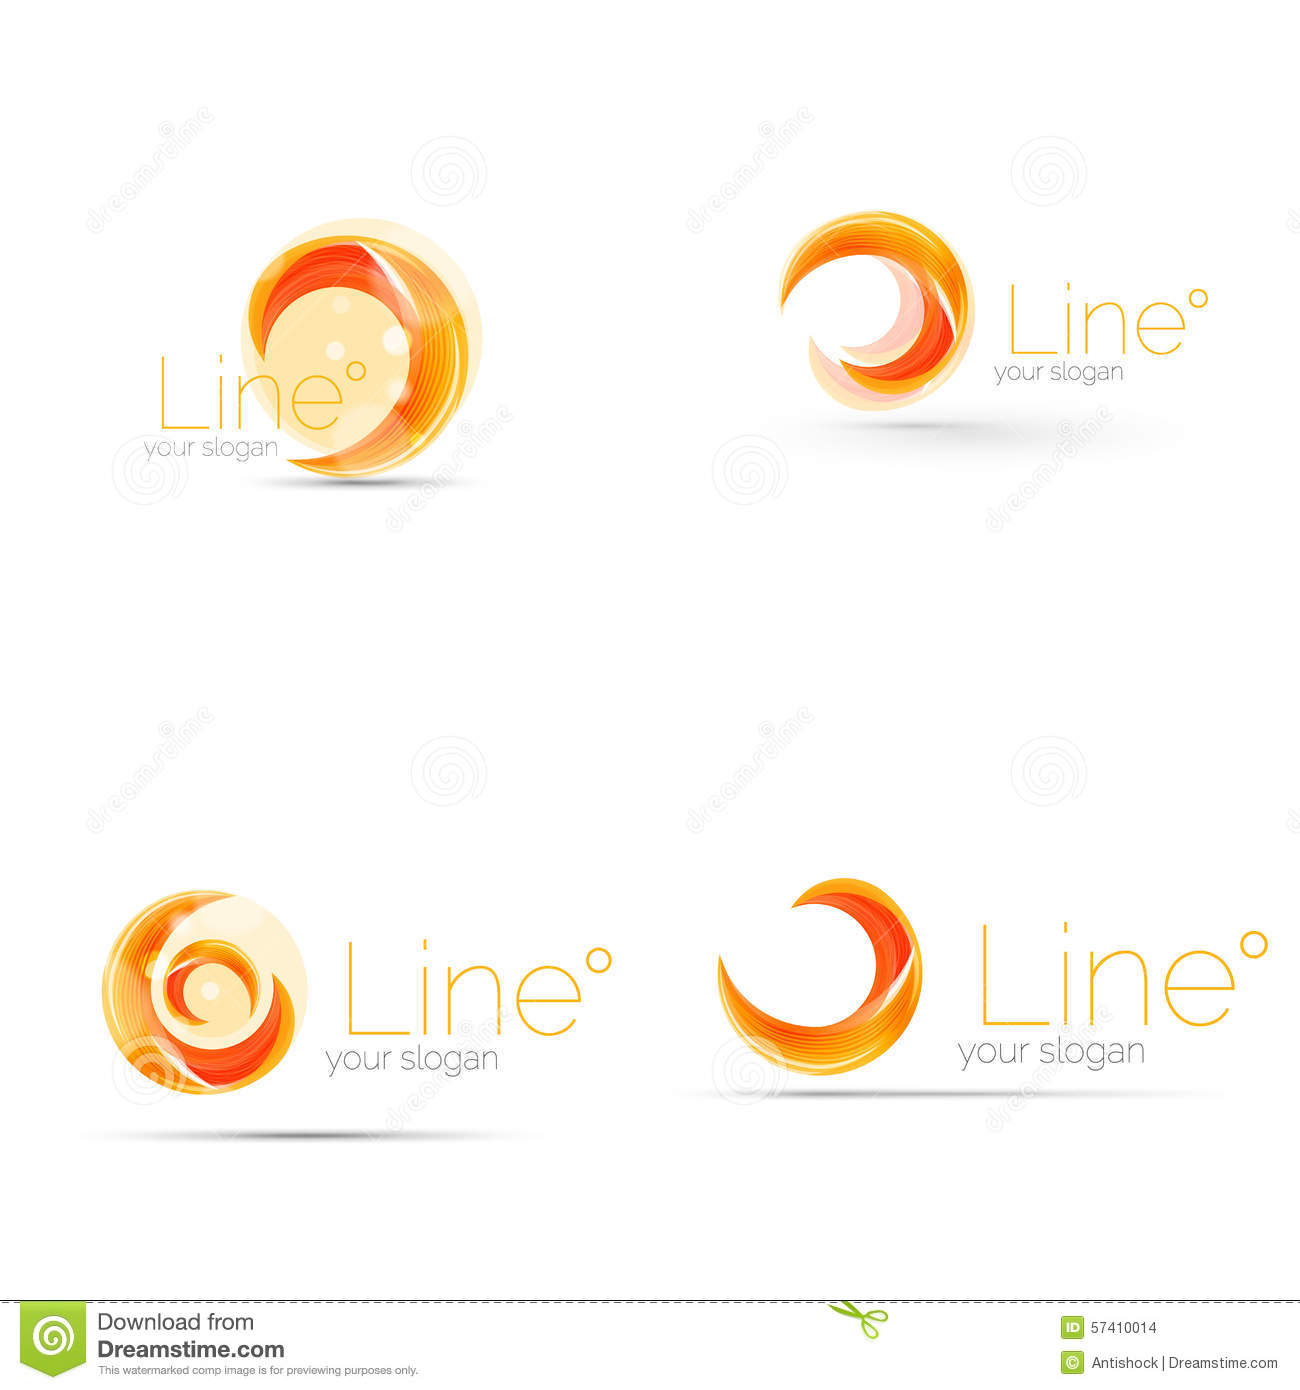 Swirl company logo design stock vector. Illustration of curve - 57410014